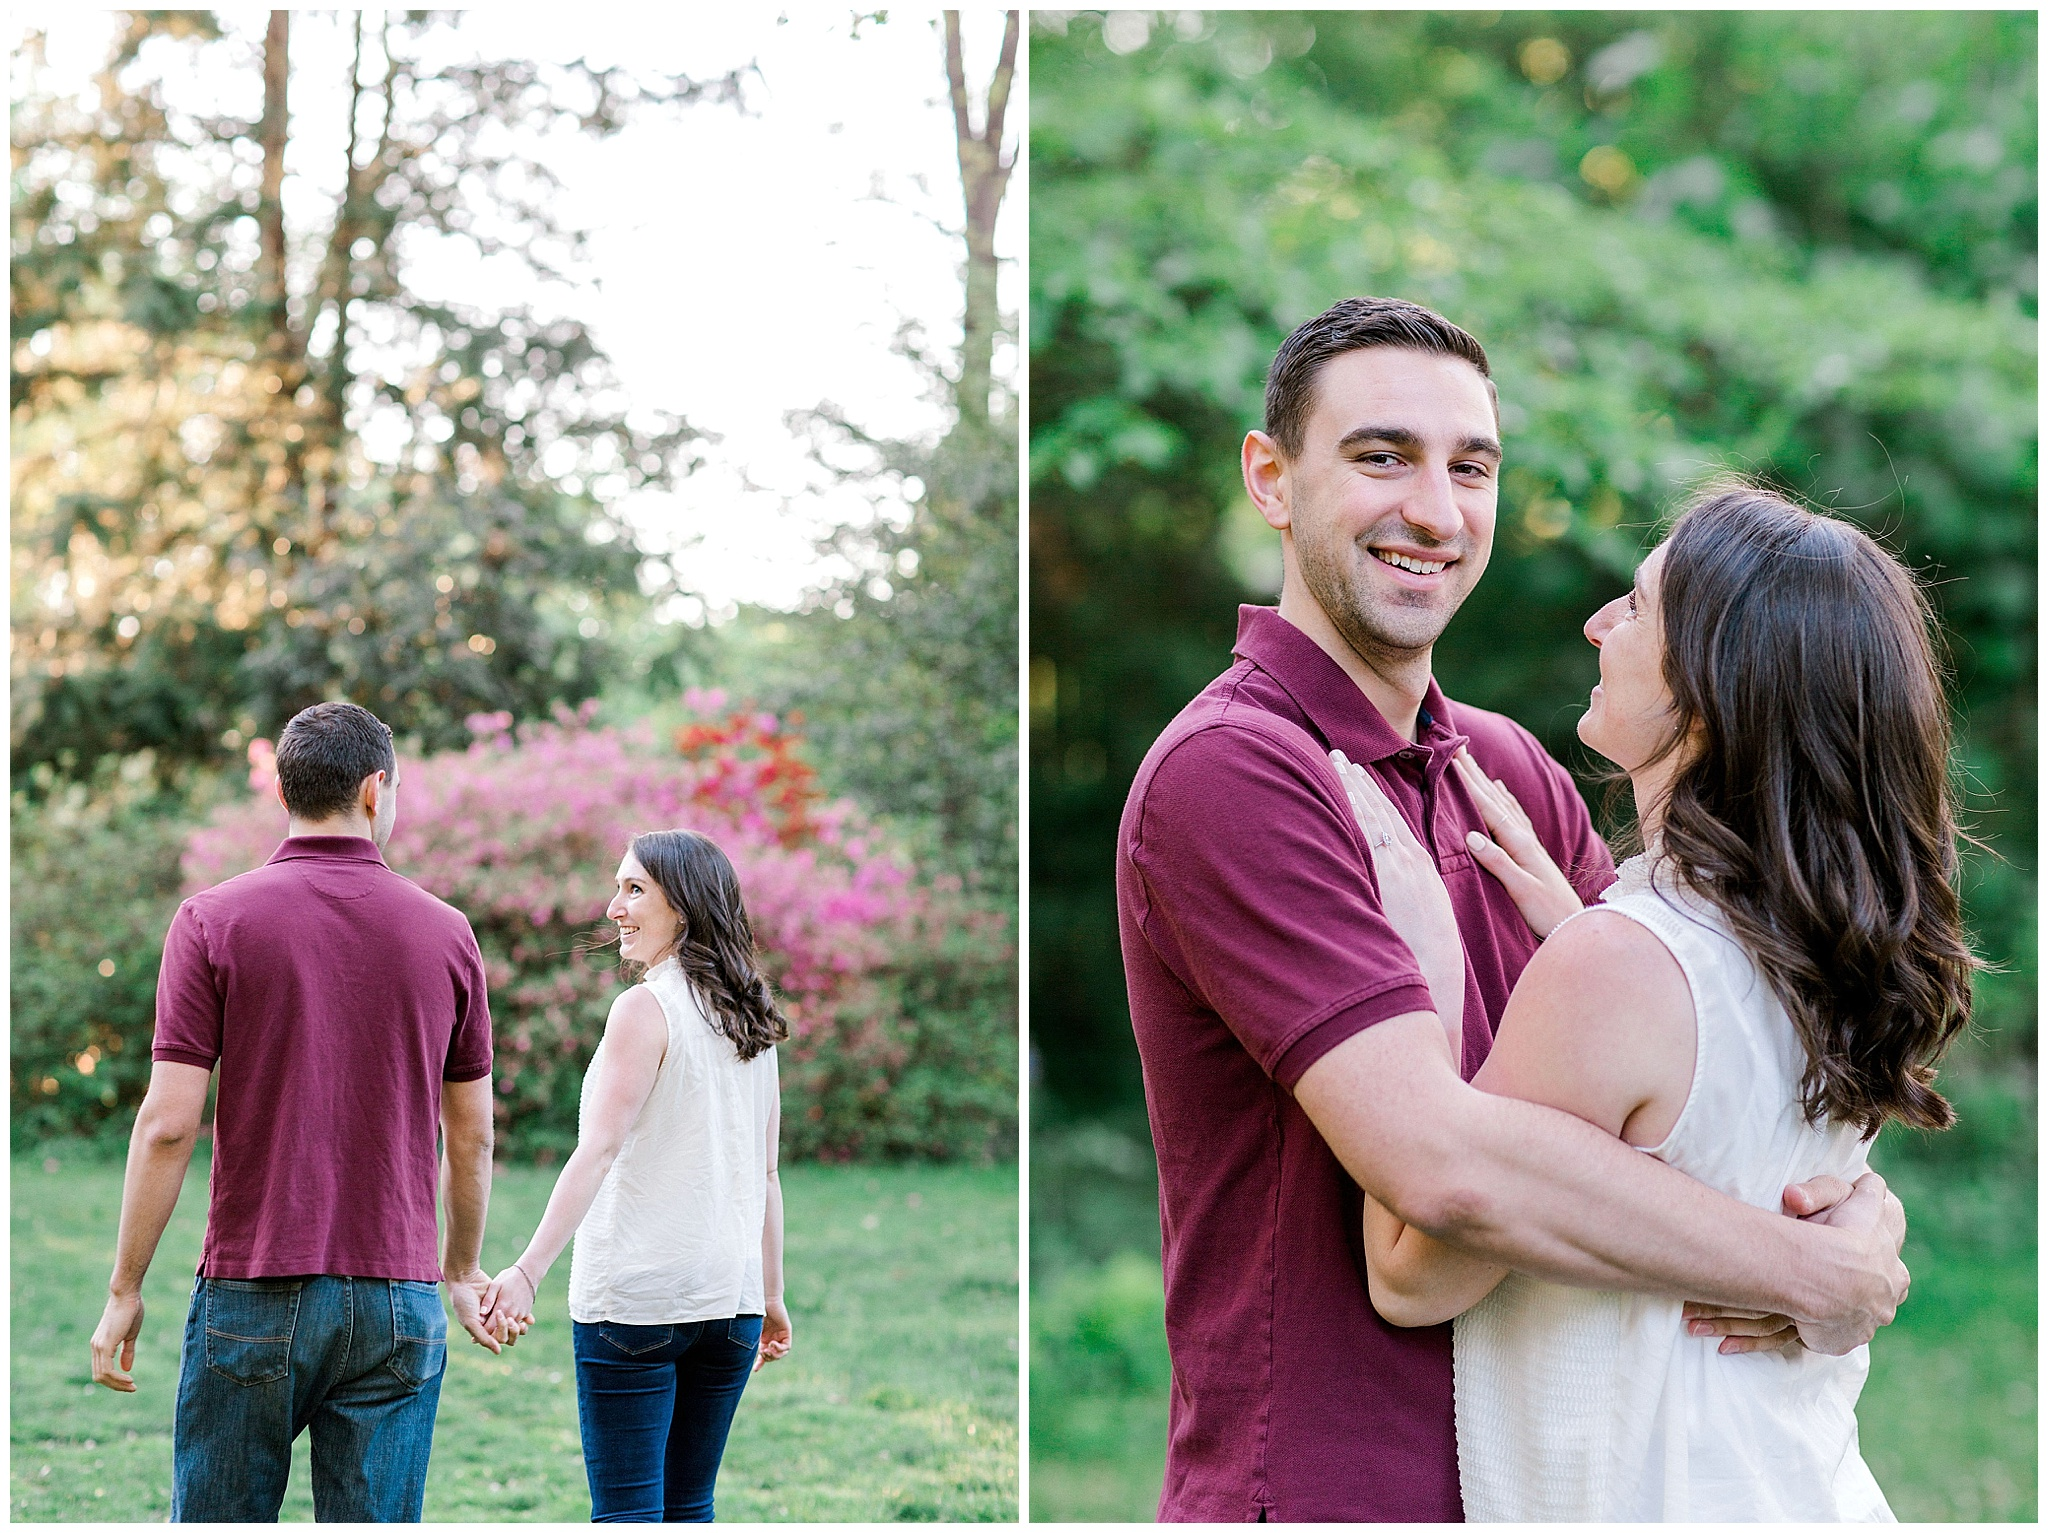 bethesda wedding photographer, maryland wedding photographer, arlington va wedding photographer, dc wedding photographer, garden engagement photos